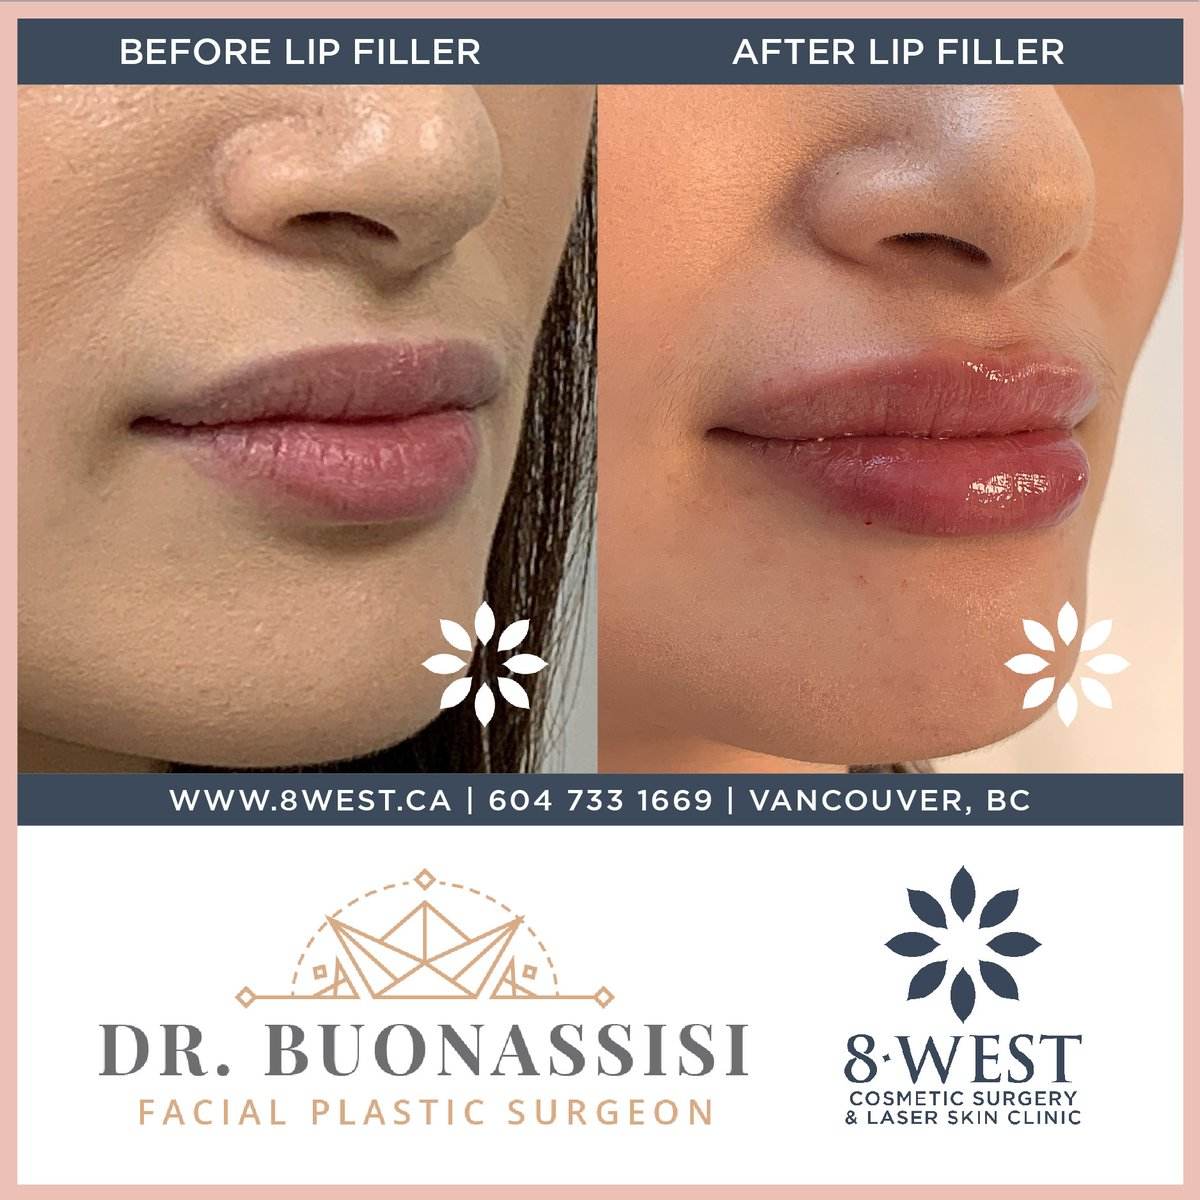 A little bit of pout shaping for this patient, performed by RN injector Lisa with a #lipfiller treatment.  The resulting look is a beautiful transformation of her cupid's bow area, along with an overall hydrated plump that remains subtle with her already full lips. pic.twitter.com/n0PqzN7JK6